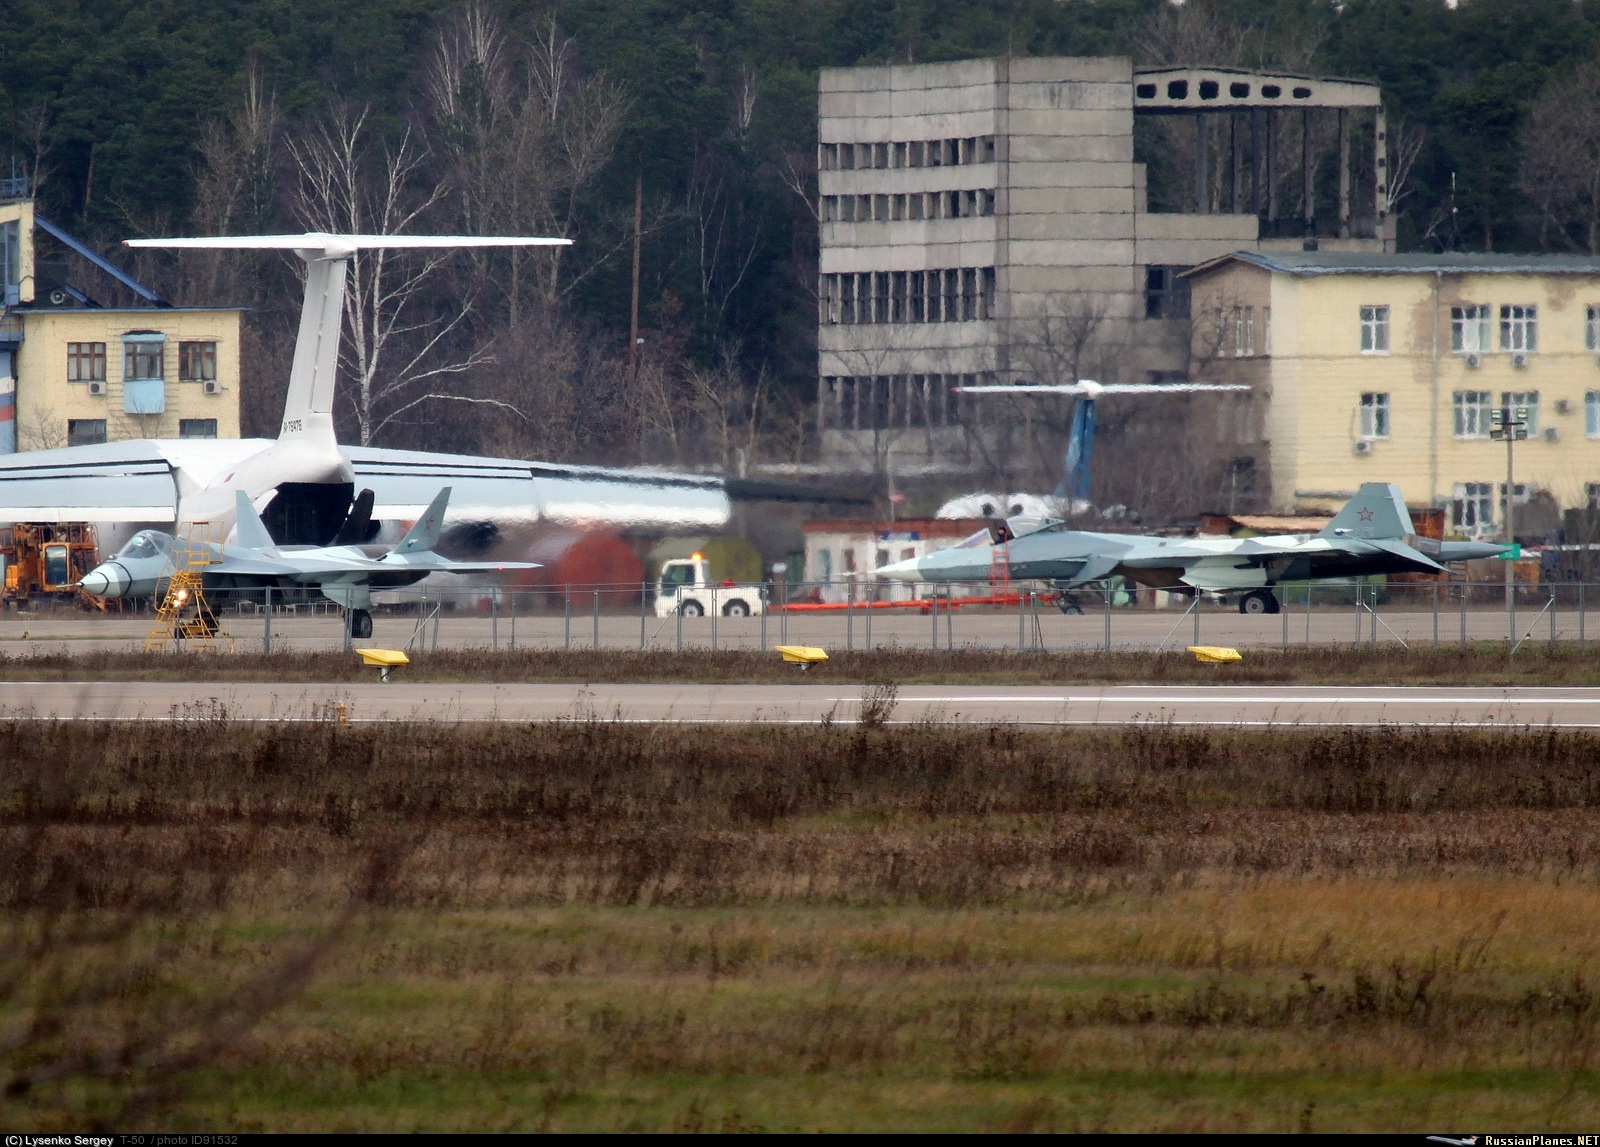 http://russianplanes.net/images/to92000/091532.jpg